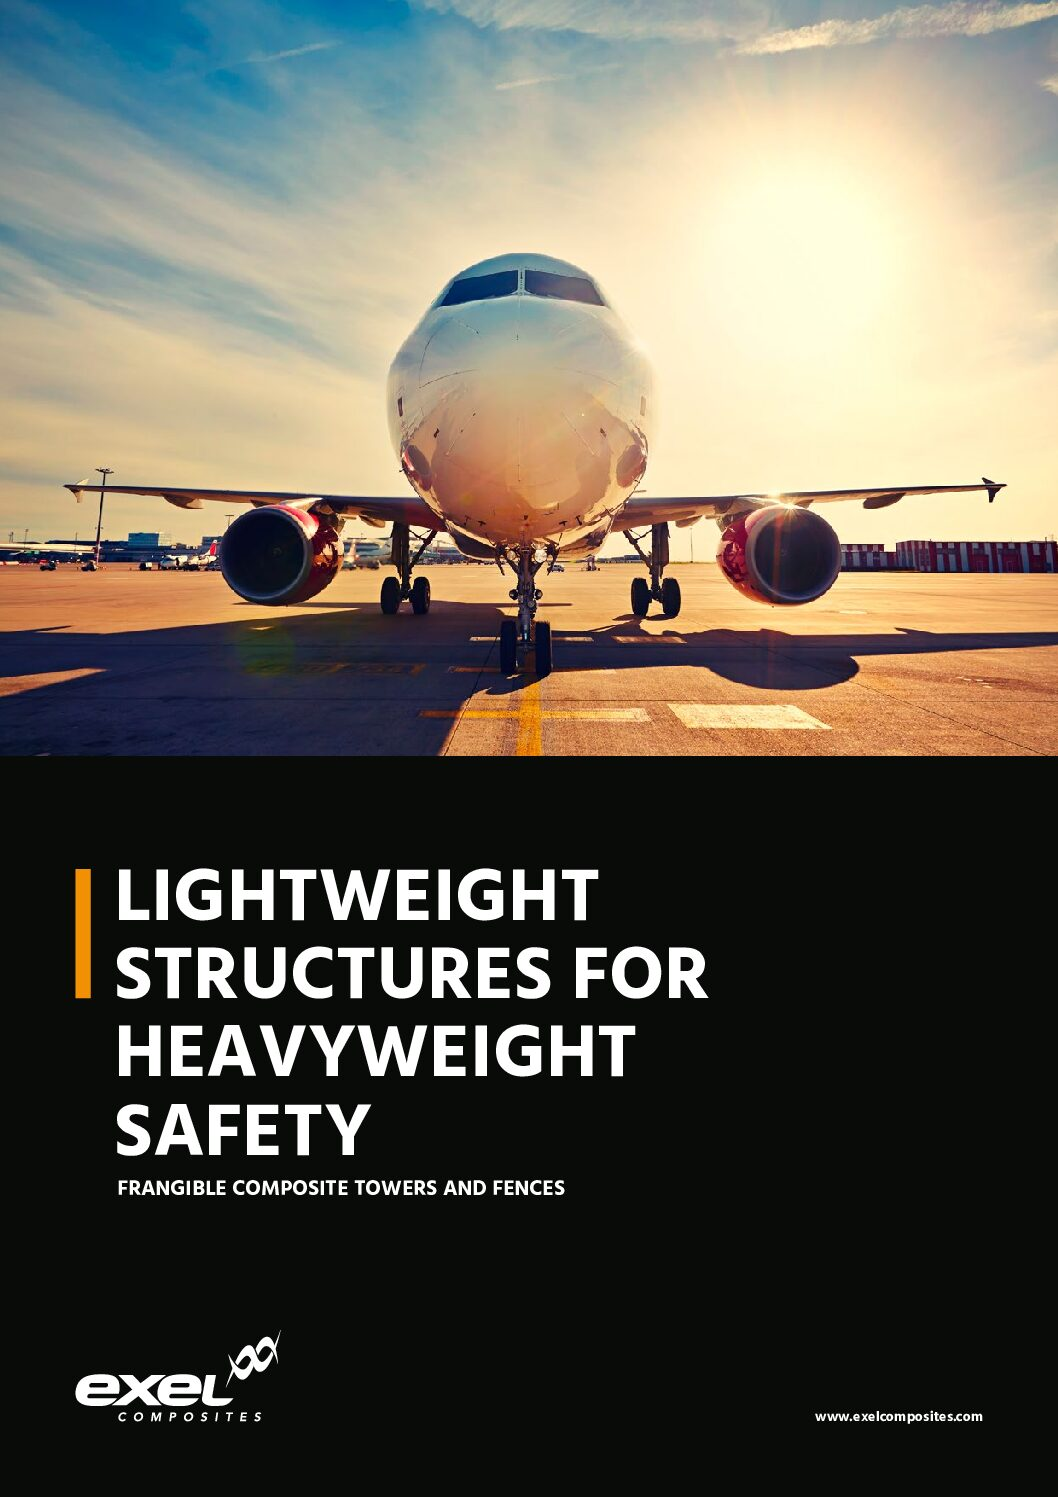 Lightweight Support Structures for Heavyweight Airfield Safety